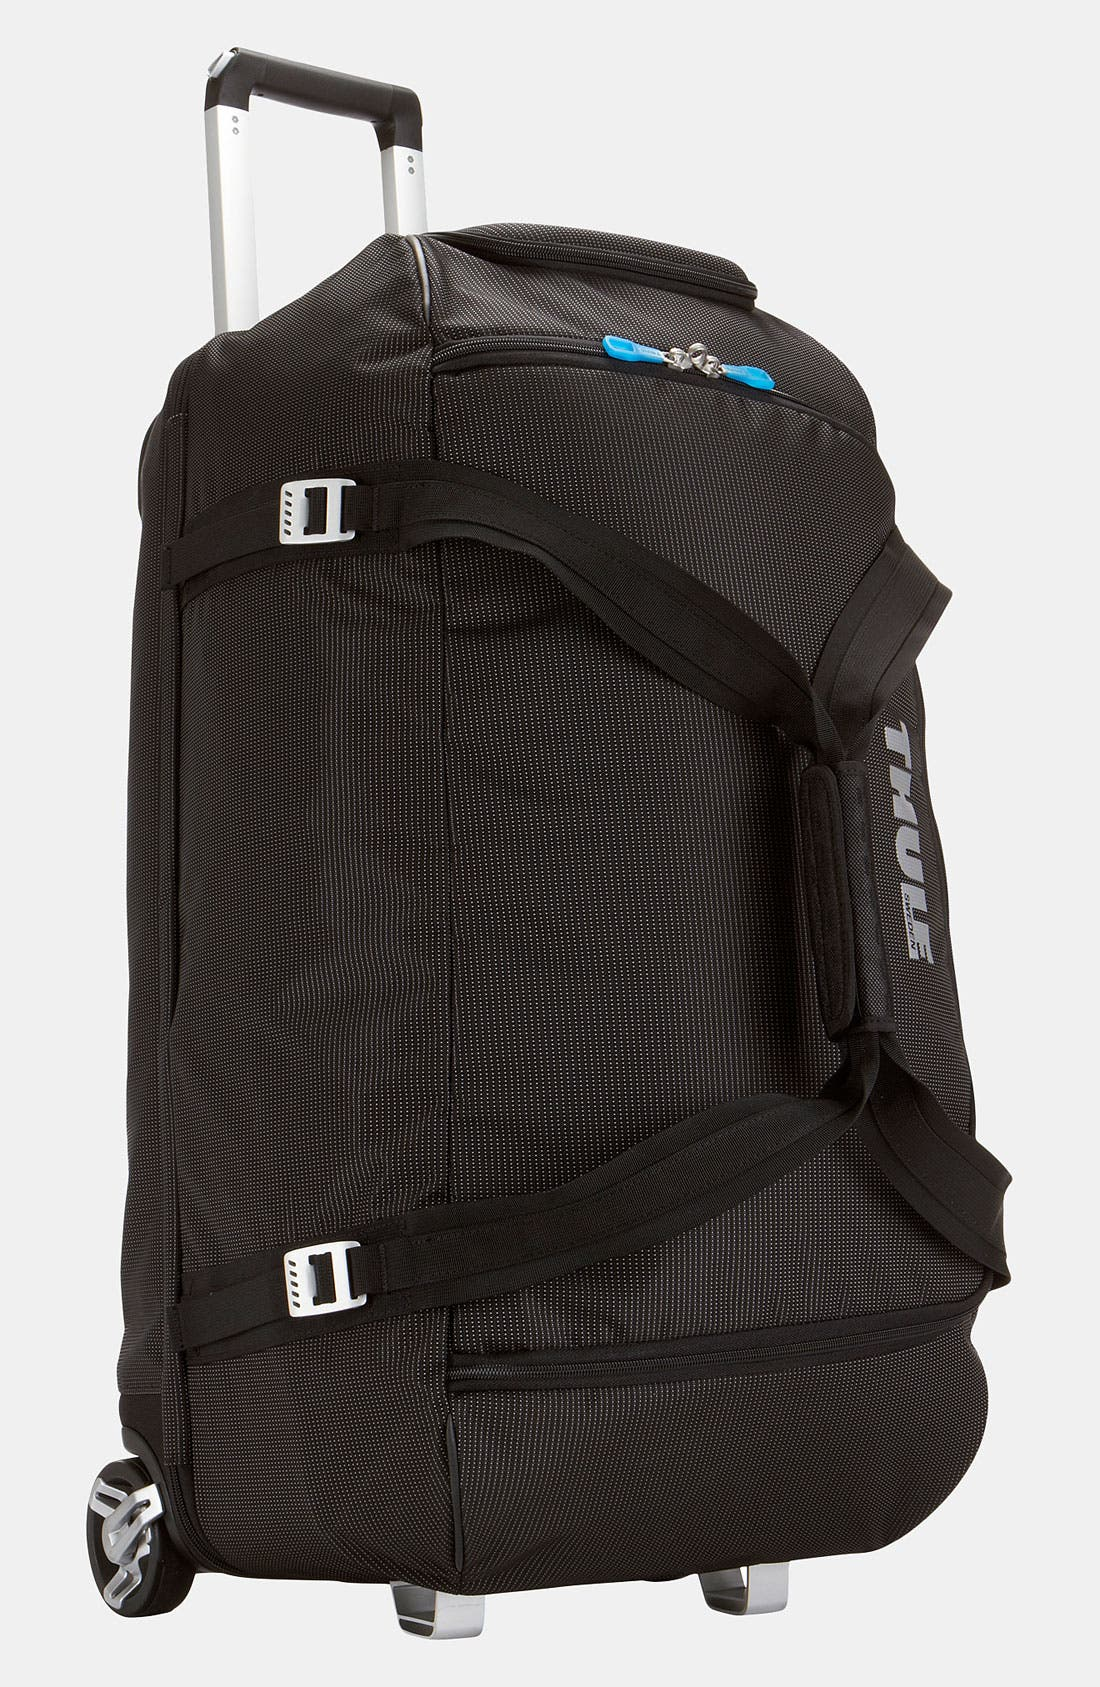 Thule Crossover 87-Liter Rolling Duffel Bag